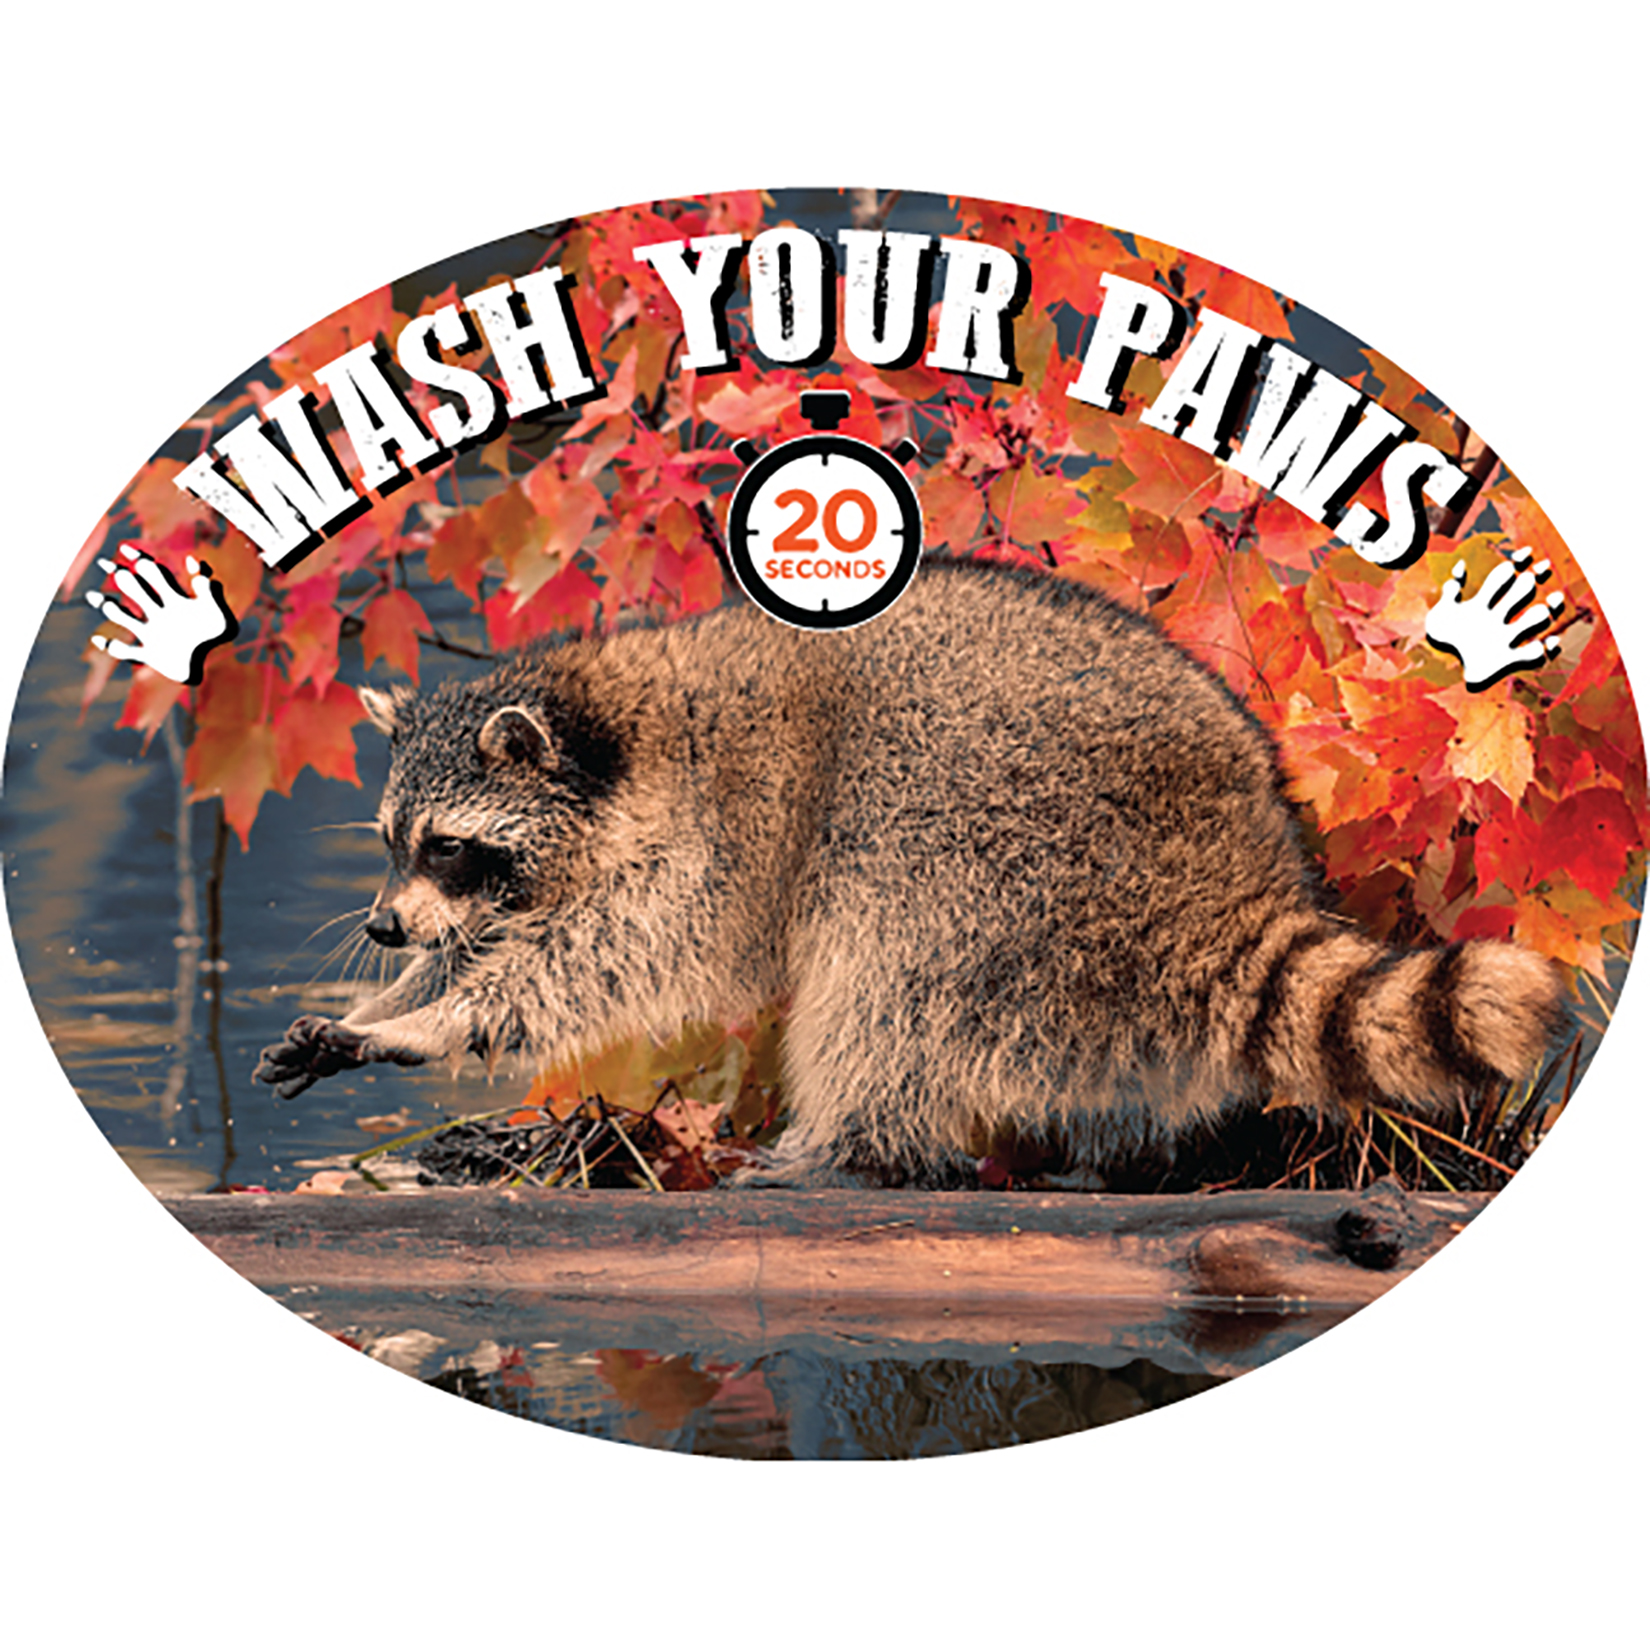 wash your paws COVID-19 racoon gift plaque